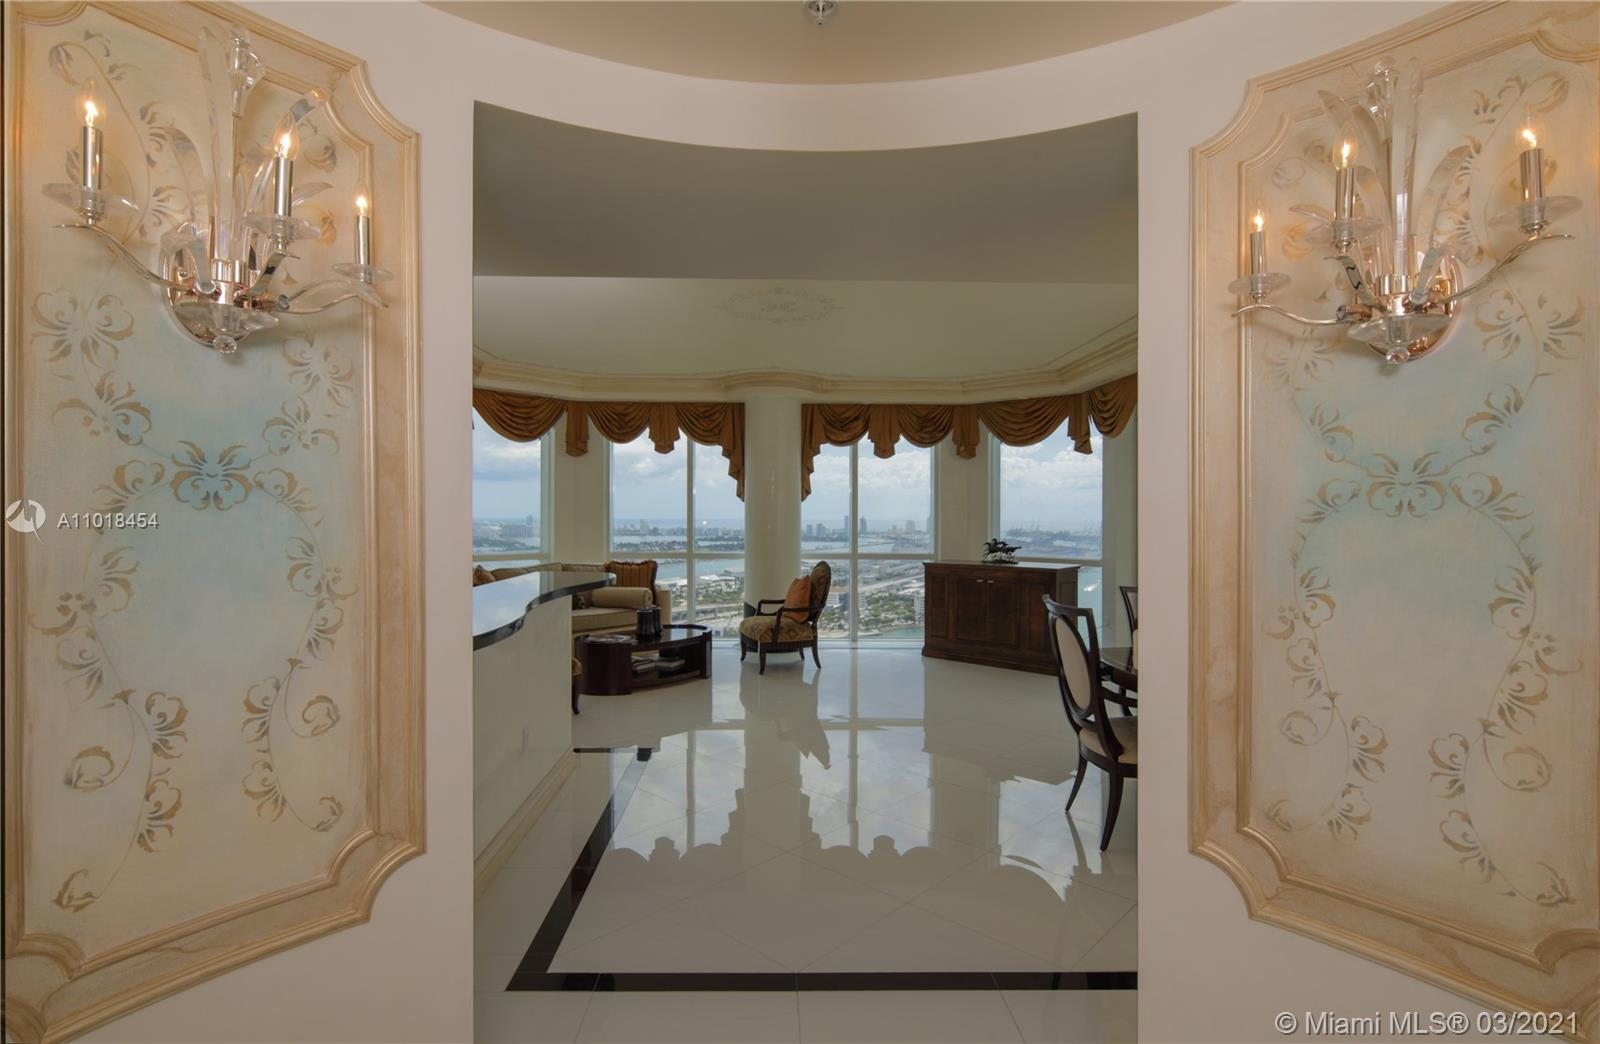 Unobstructed 180 water views, spectacular bay + ocean views, 2 balconies, ceiling to floor glass, decorator finished, luxury finishes in the heart of Miami across from Bayside, granite countertops, stainless steel appliances, luxurious walk in closets, all marble floors, electric shades, chandeliers, 4 pools, fitness center, Jacuzzi bar, sauna, steam, valet.